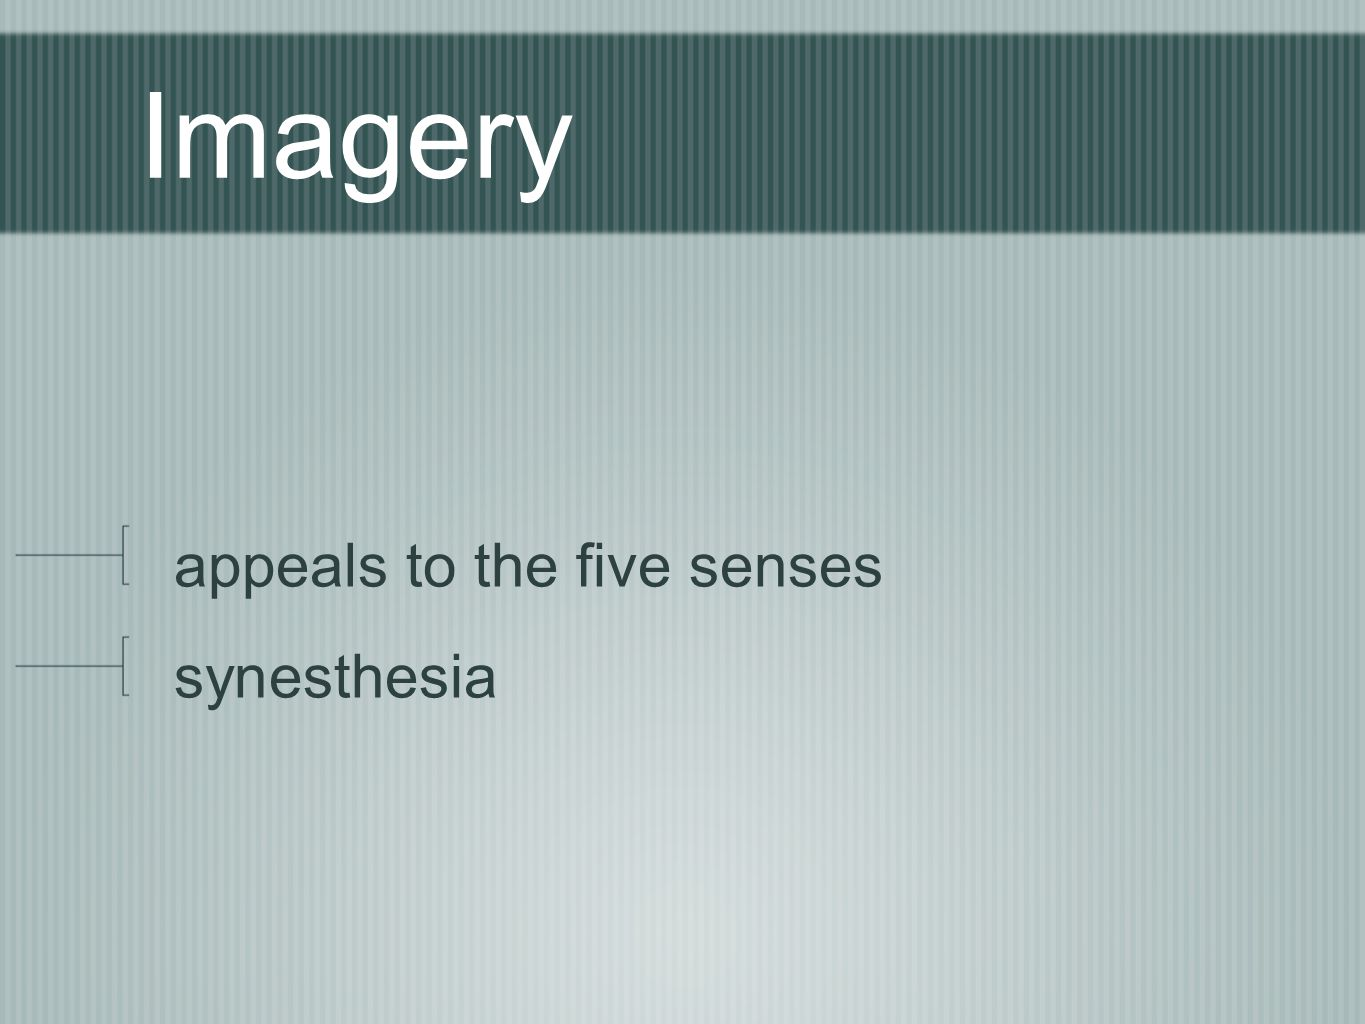 Imagery appeals to the five senses synesthesia